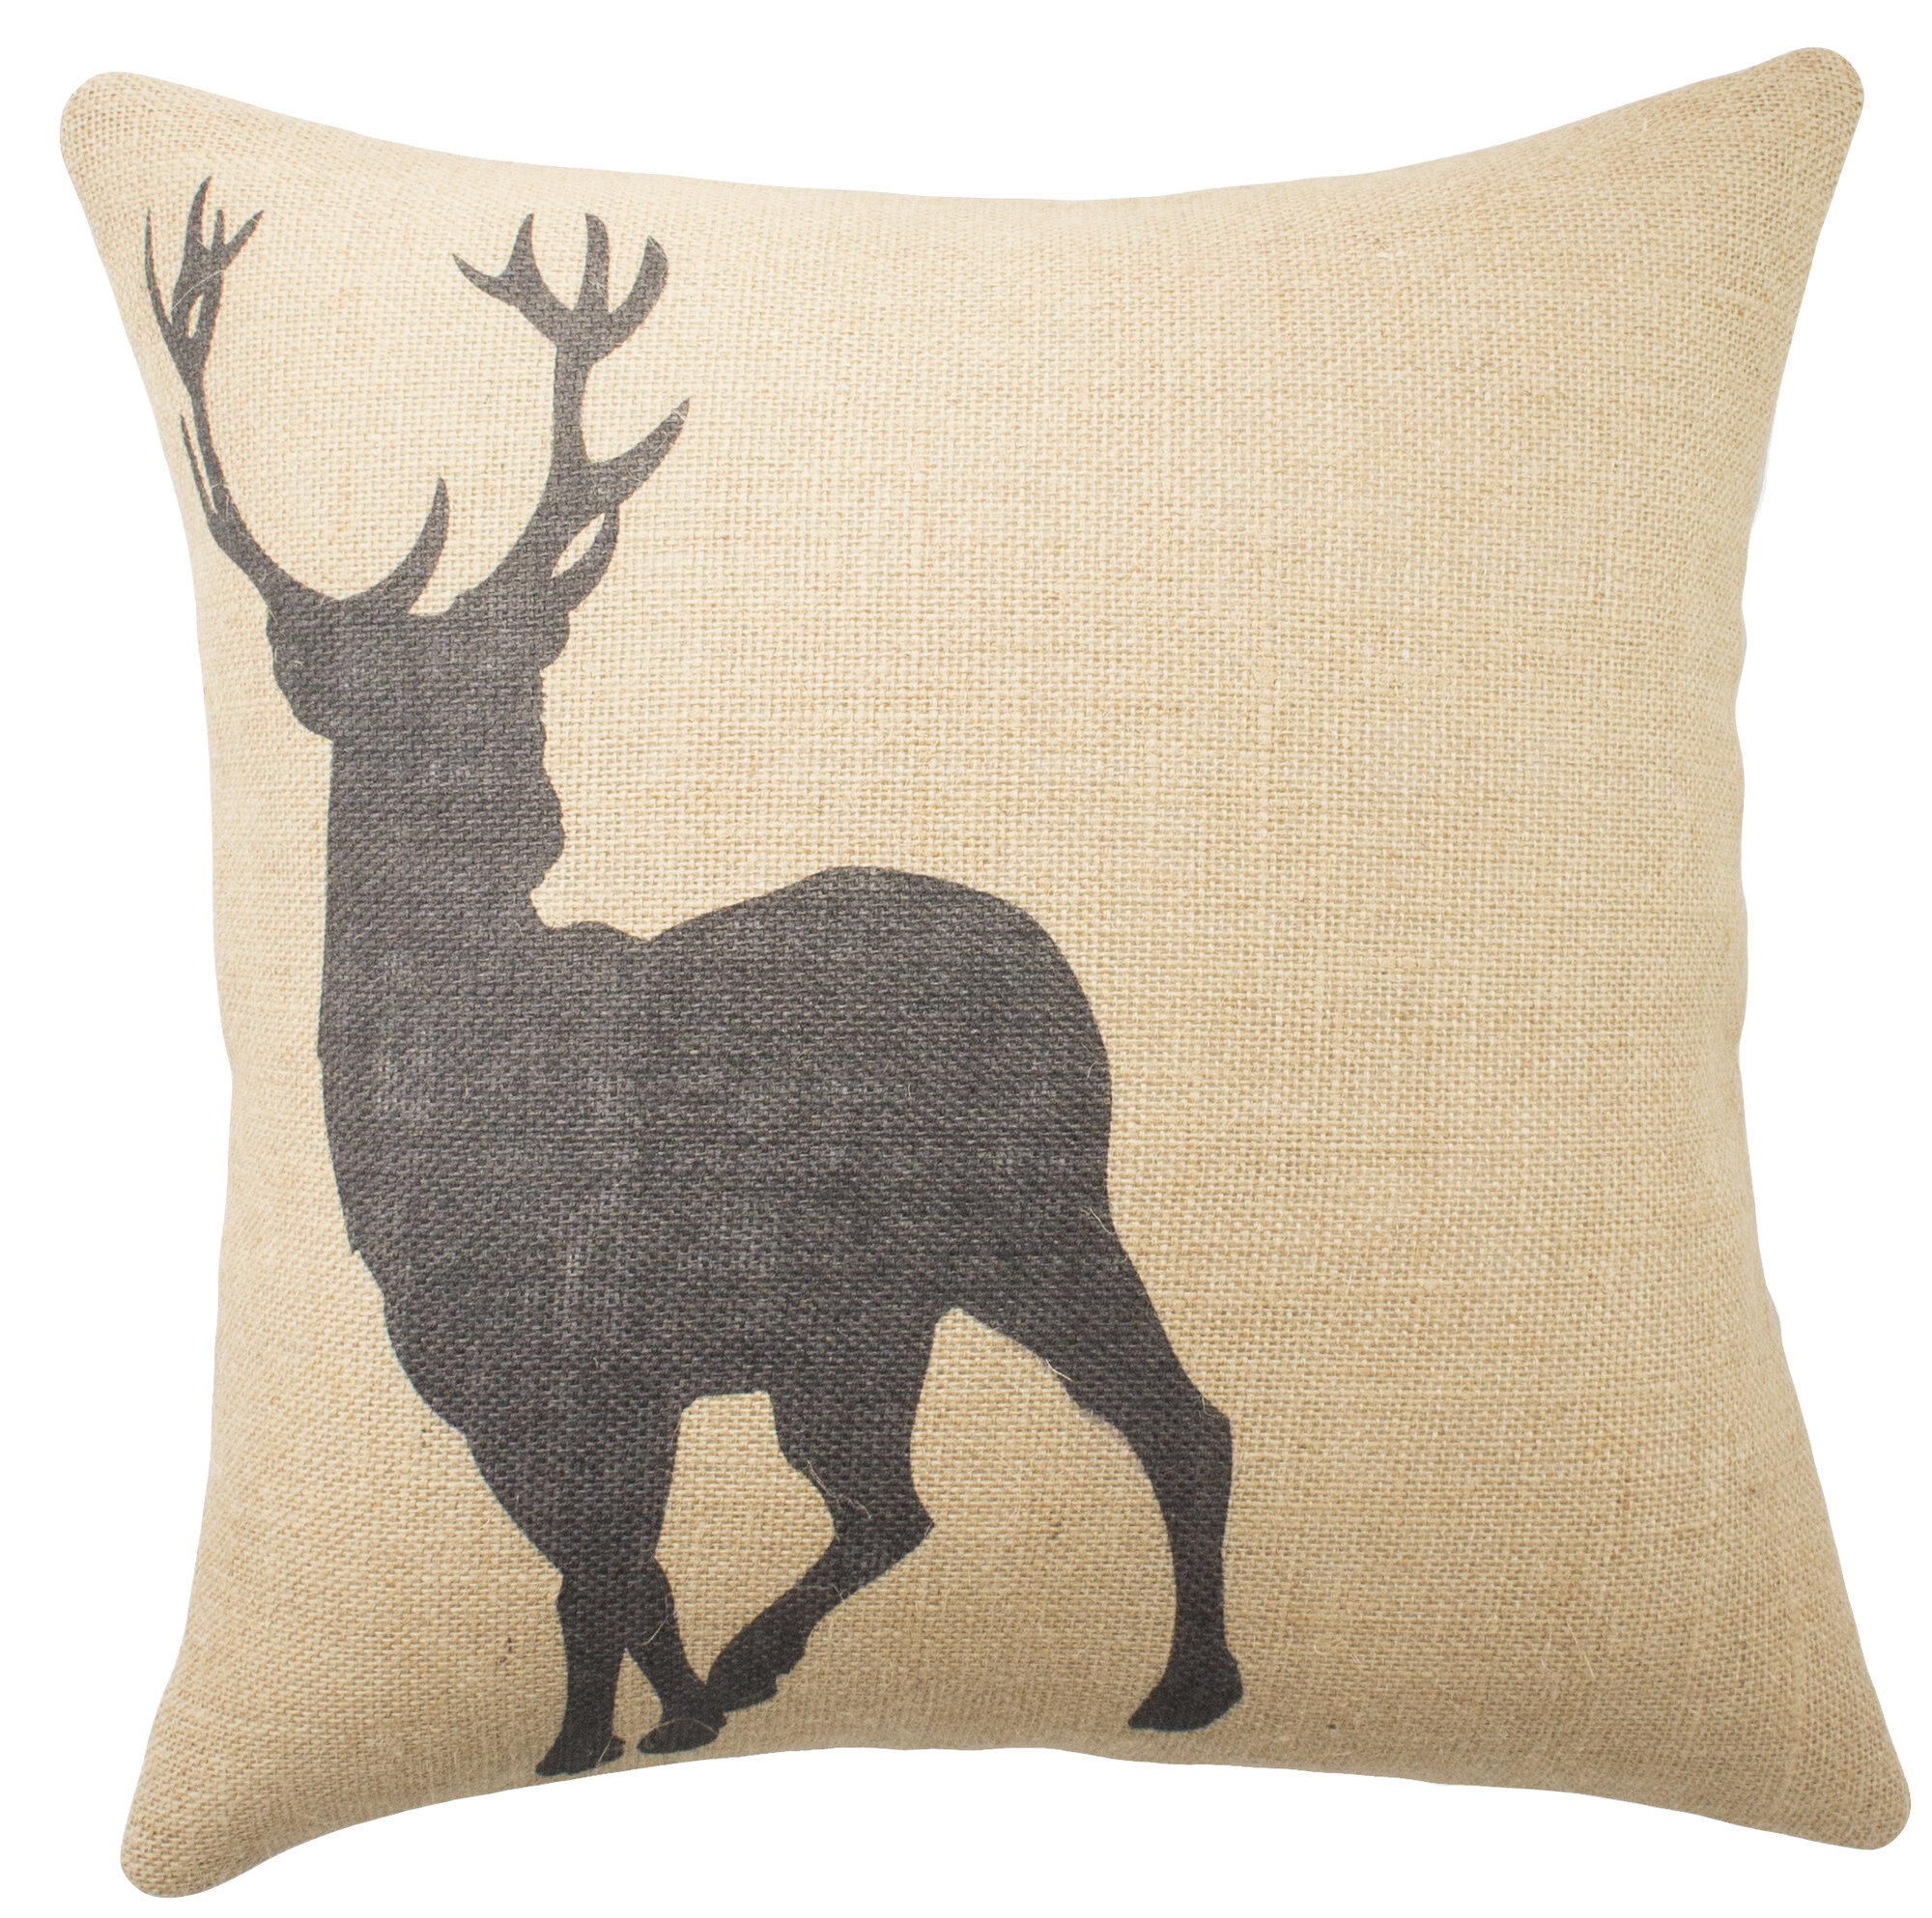 Throw Pillows Deer : TheWatsonShop Deer Burlap Throw Pillow